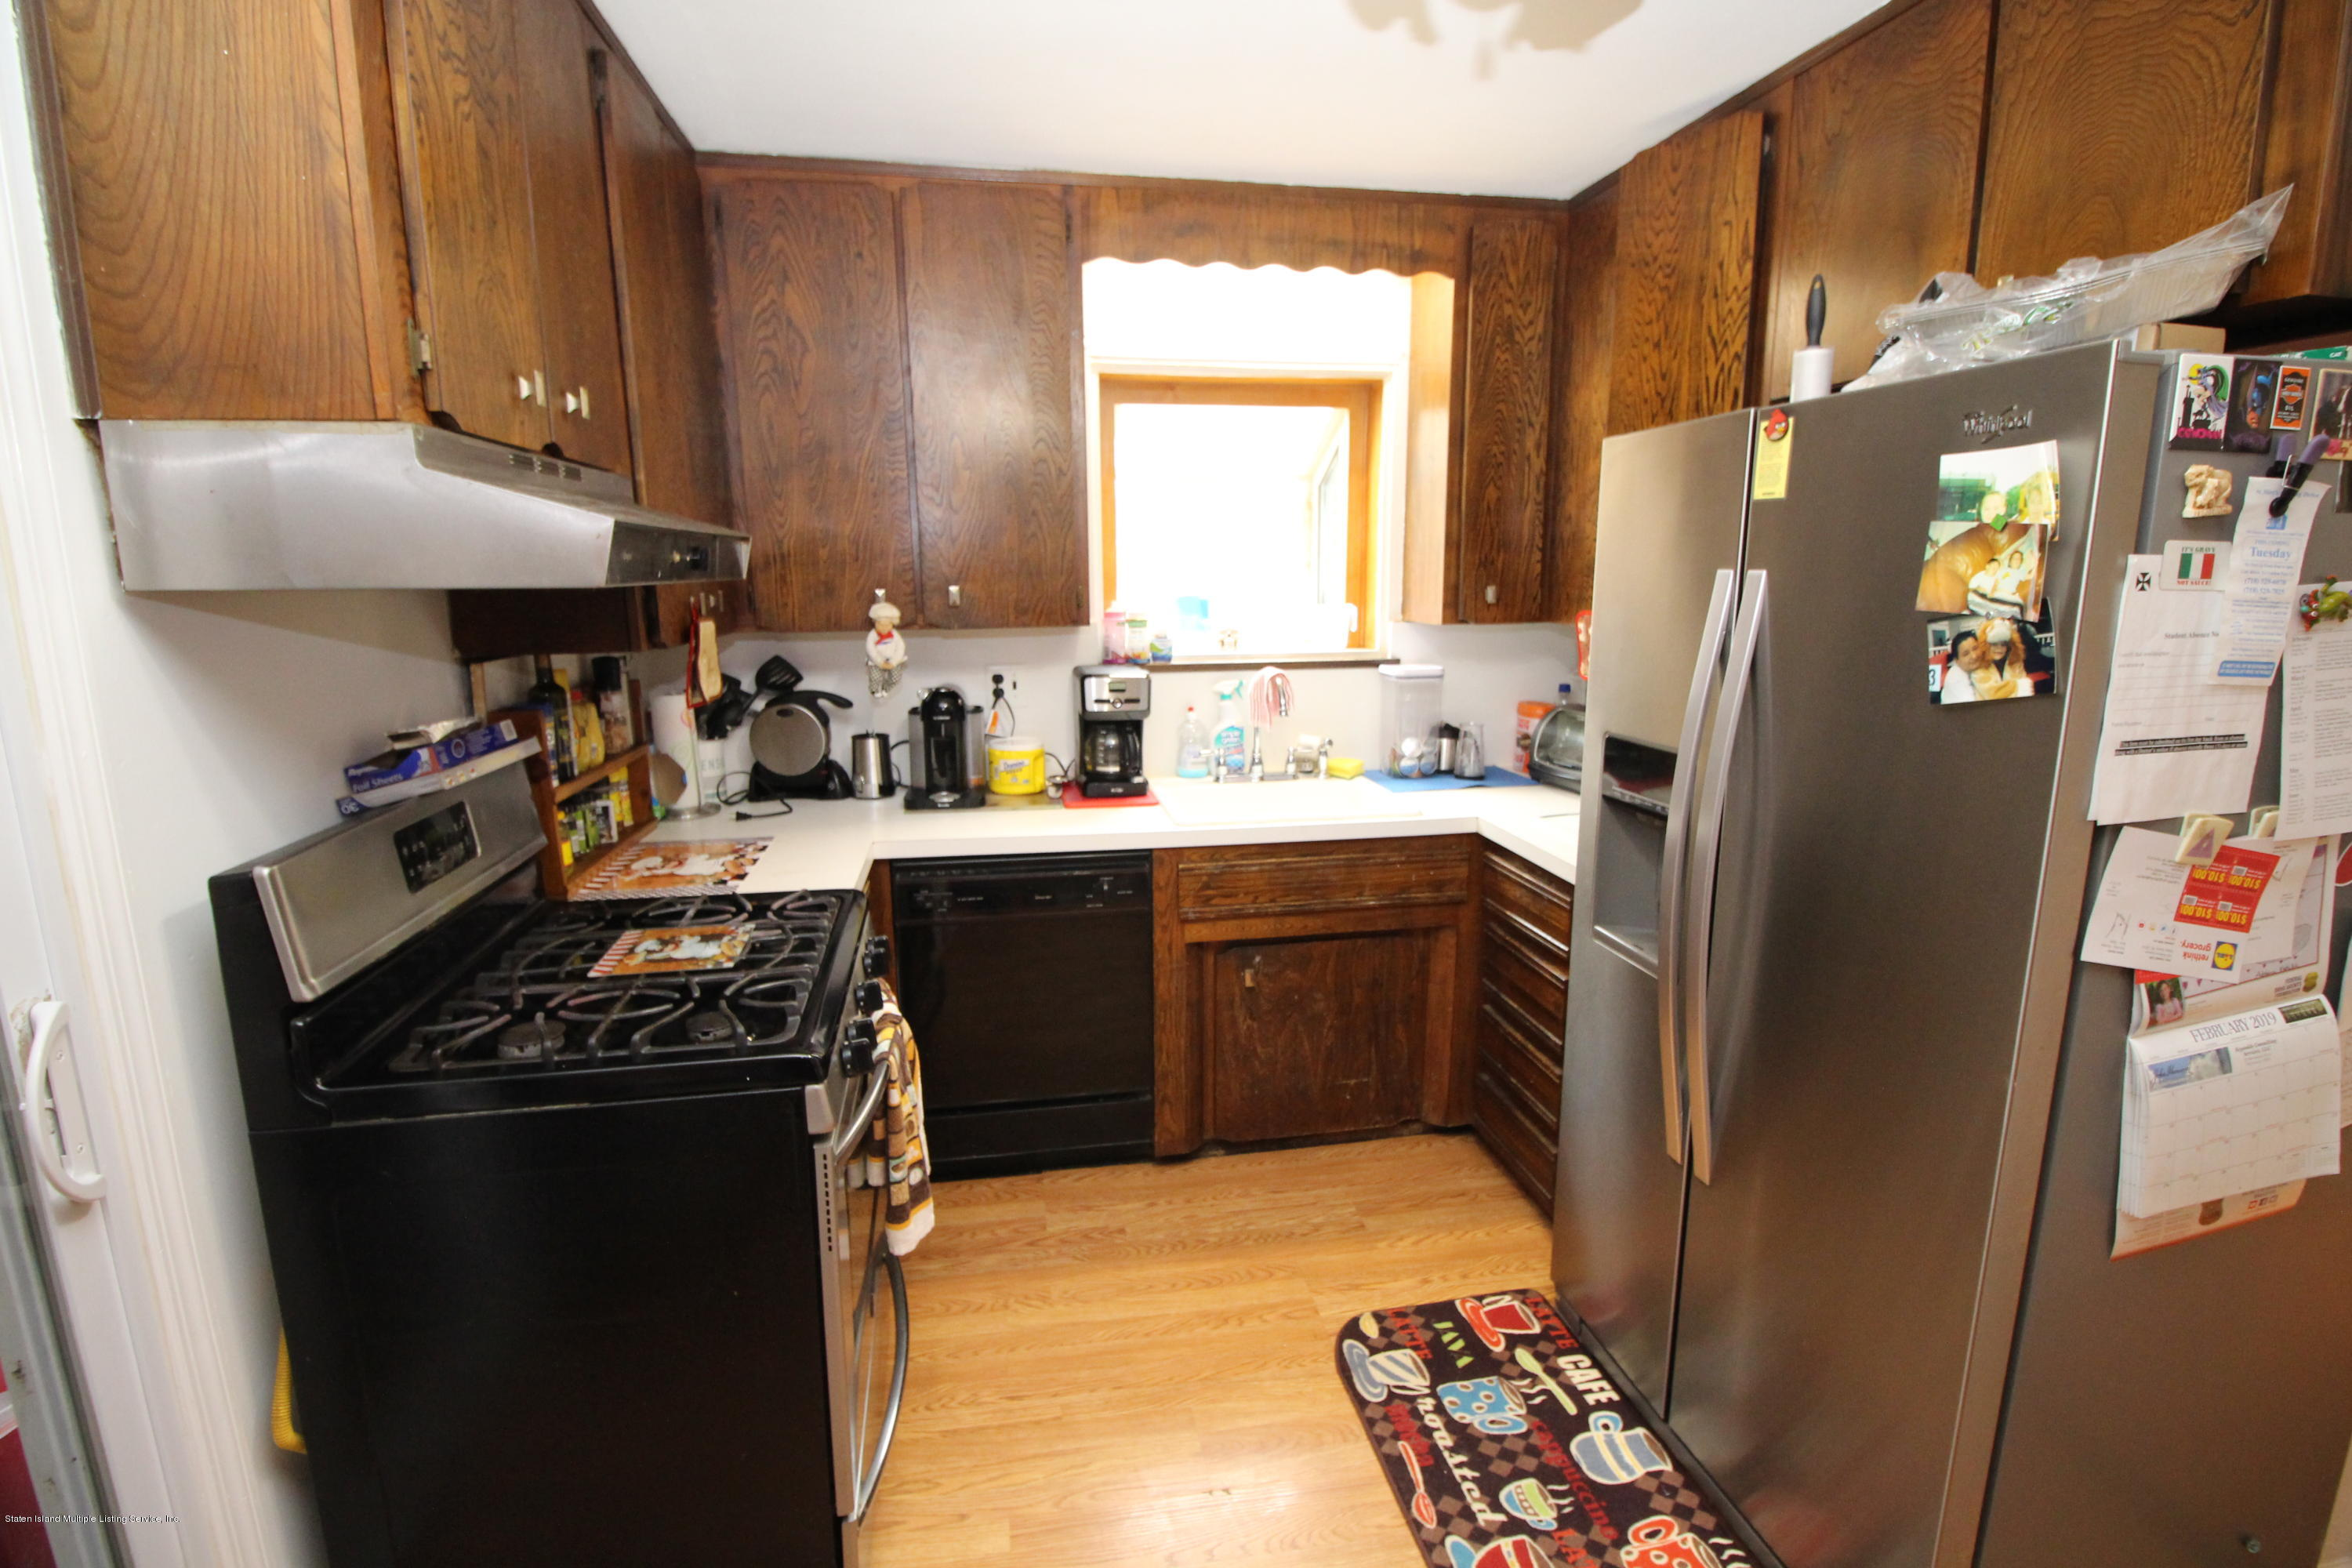 Single Family - Semi-Attached 48 Mulberry Avenue  Staten Island, NY 10314, MLS-1126171-8